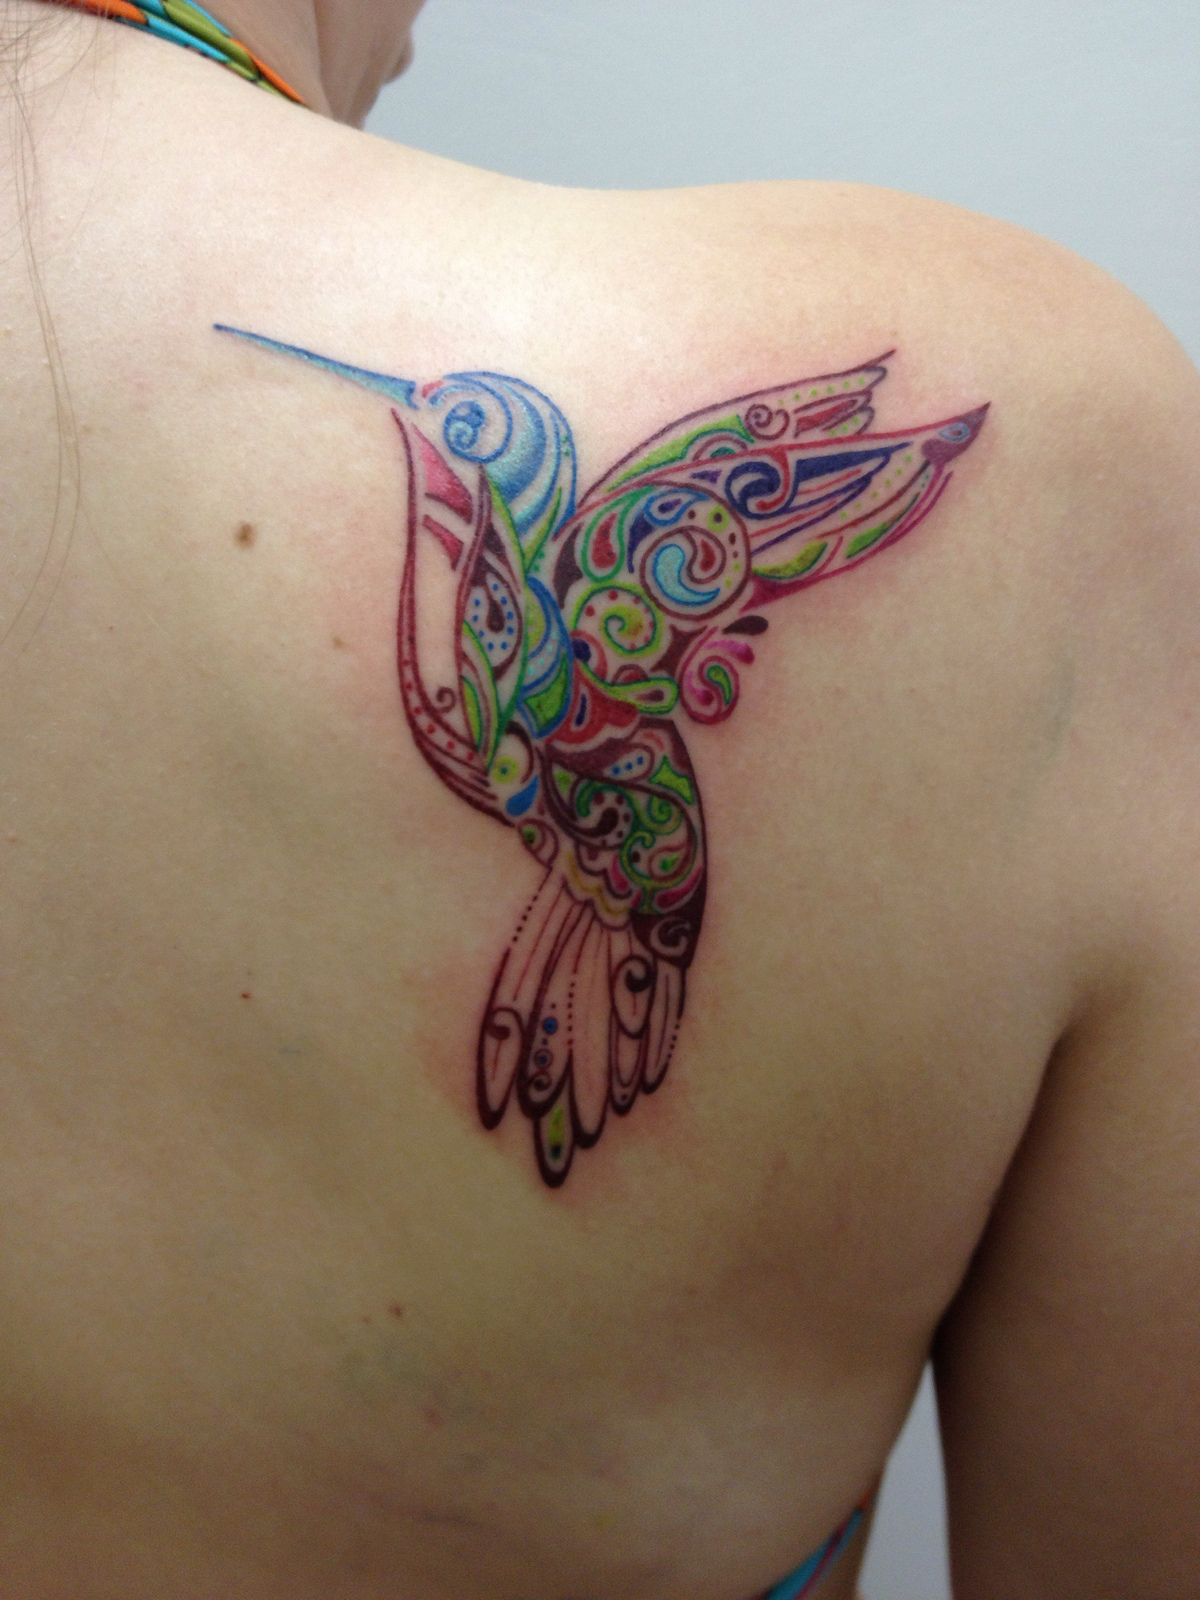 Hummingbird Tattoos Designs, Ideas and Meaning | Tattoos ...